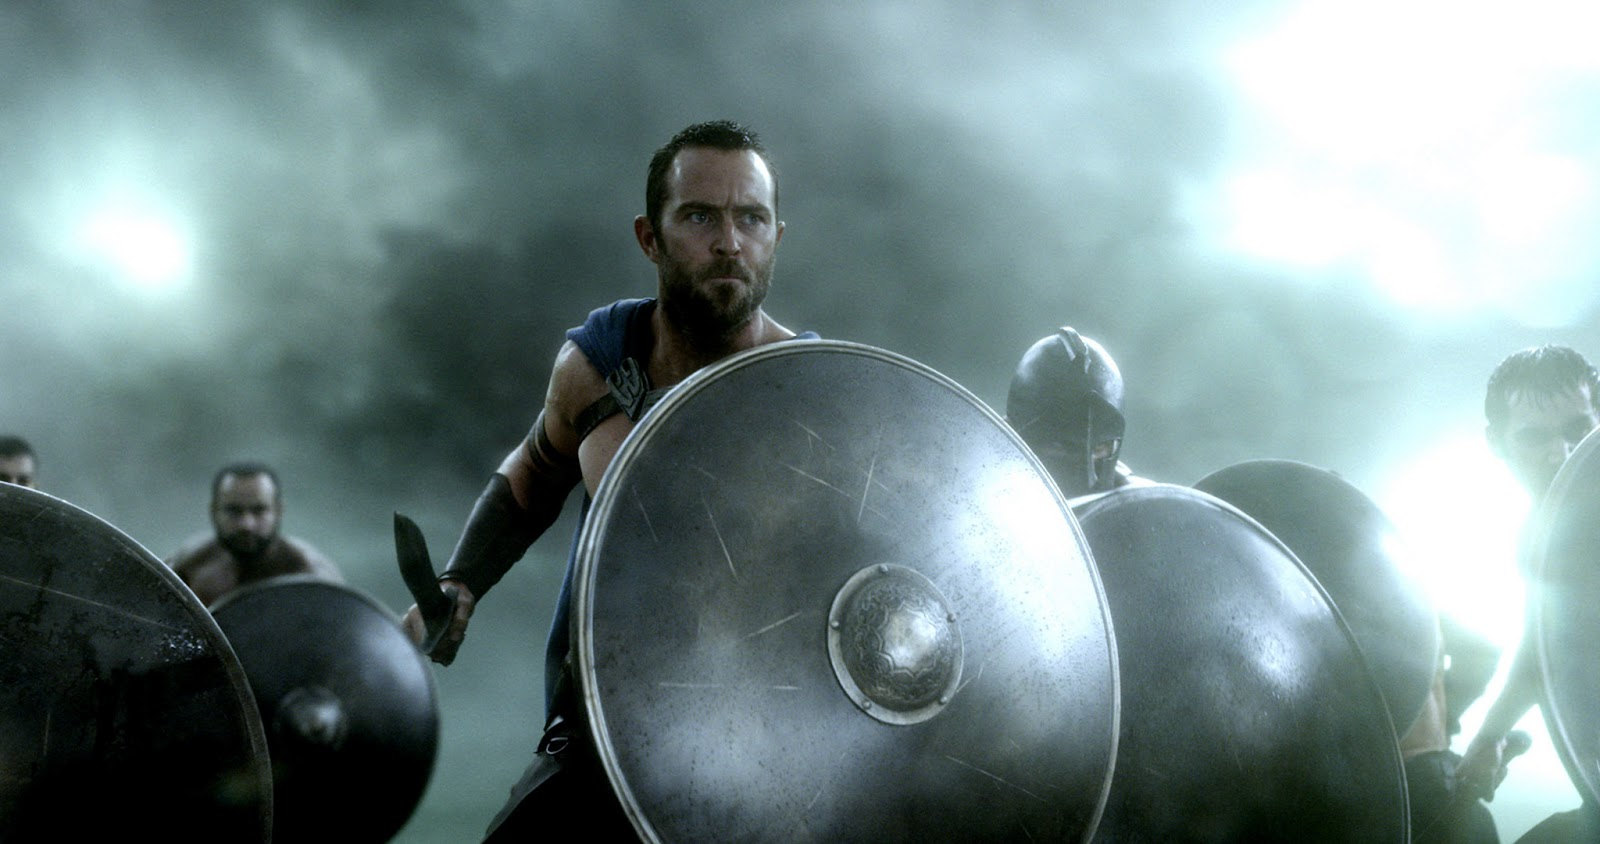 300: Rise of an Empire Sullivan Stapleton as Themistokles